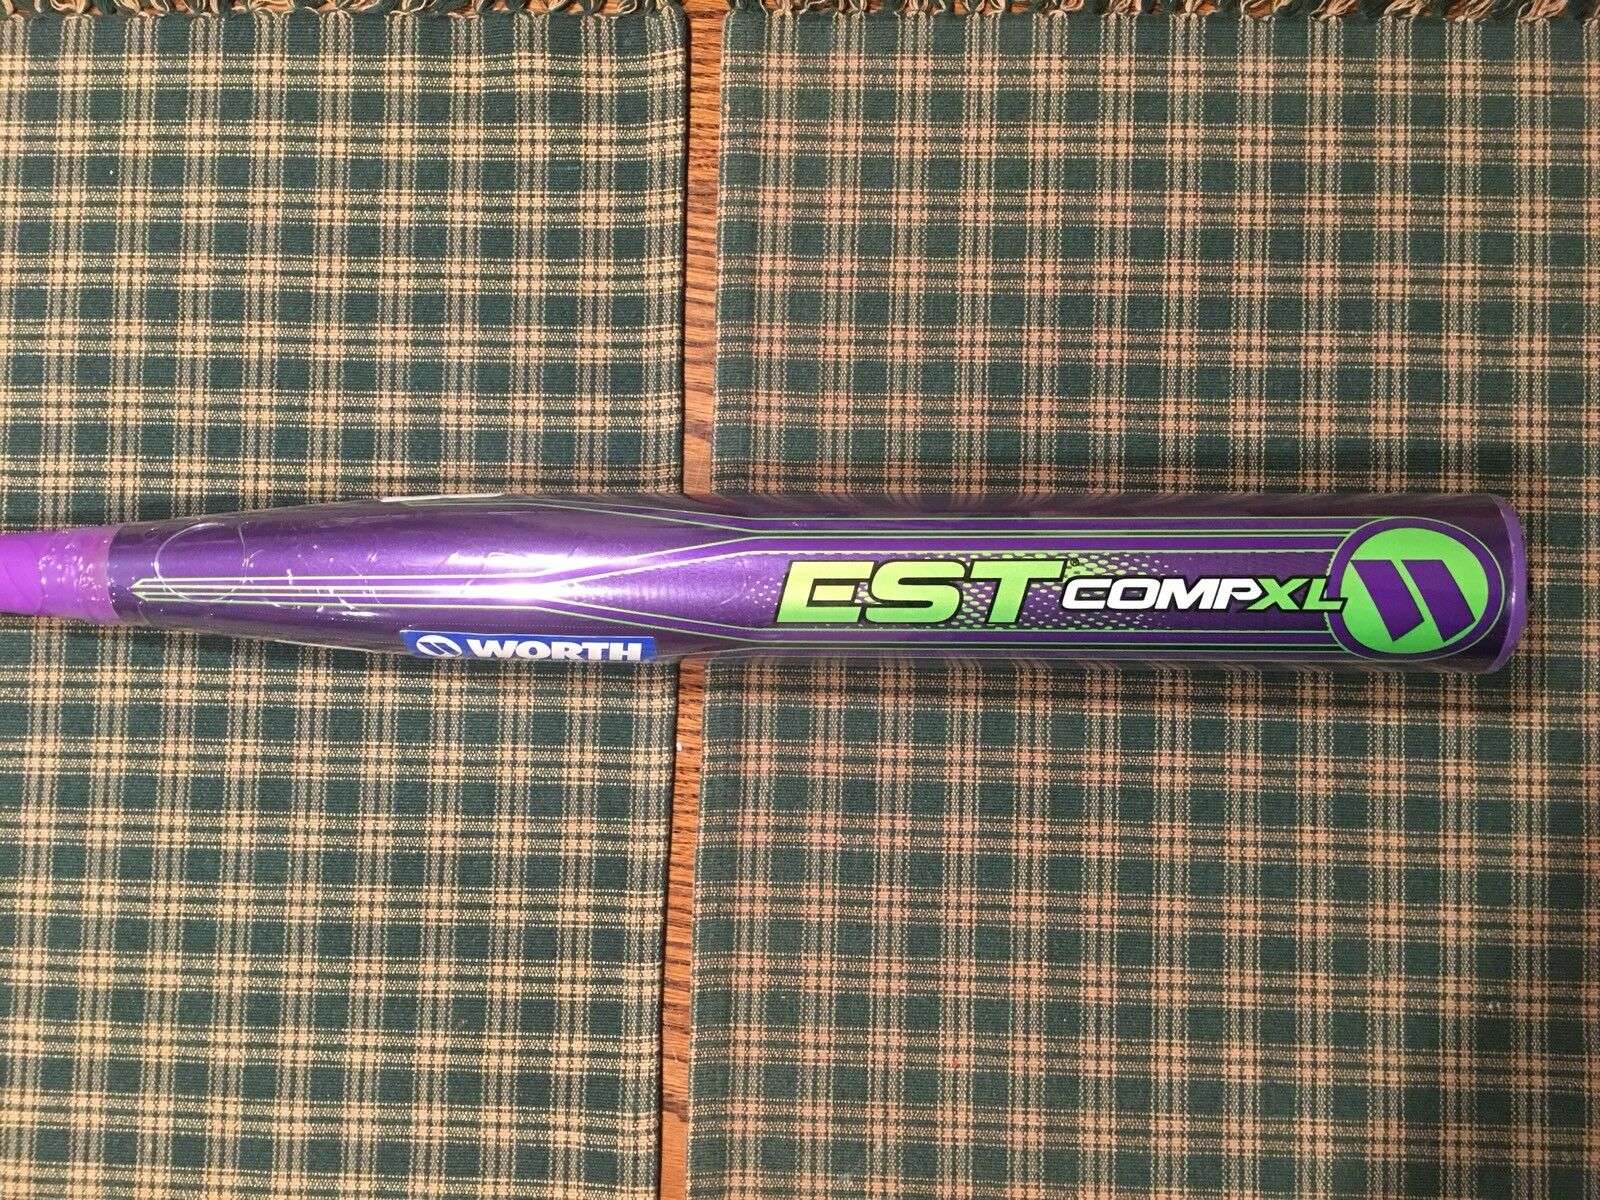 "RARE NIW 2017 WORTH EST COMP XL END LOADED WESTRA 34 28 13.5"" BARREL ASA HOT"